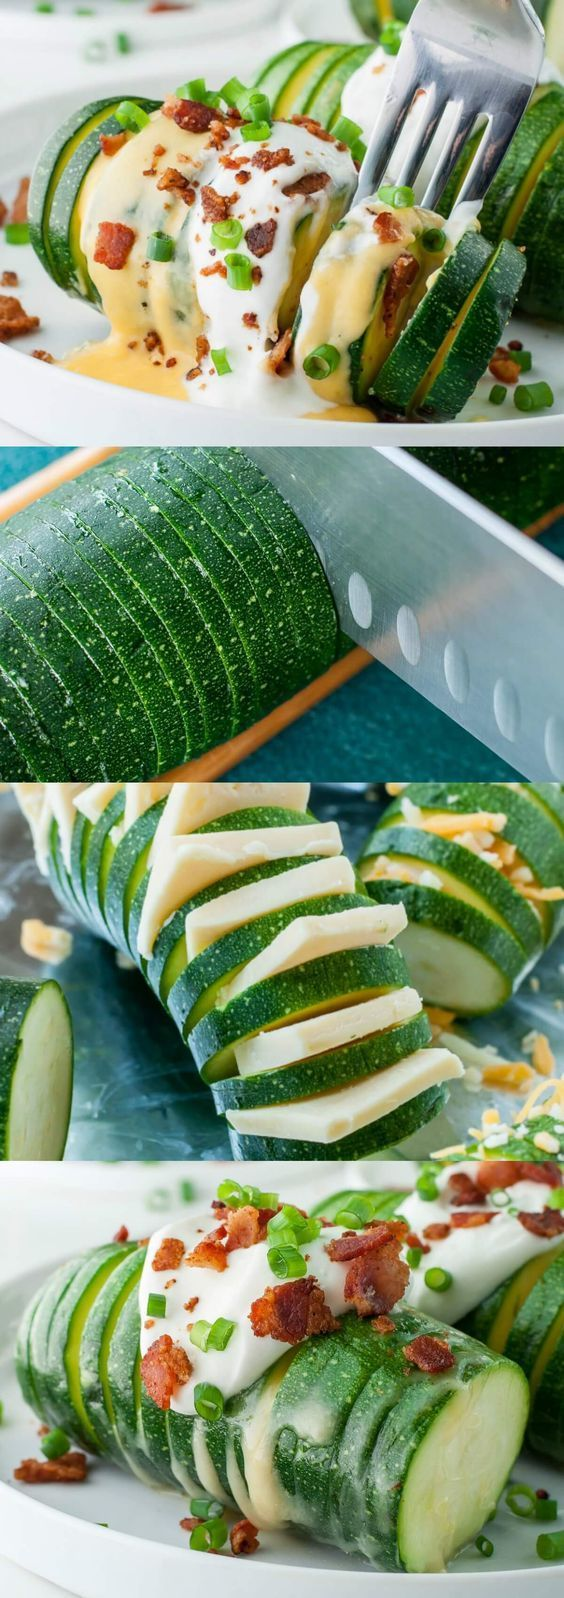 Loaded Hasselback Zucchini